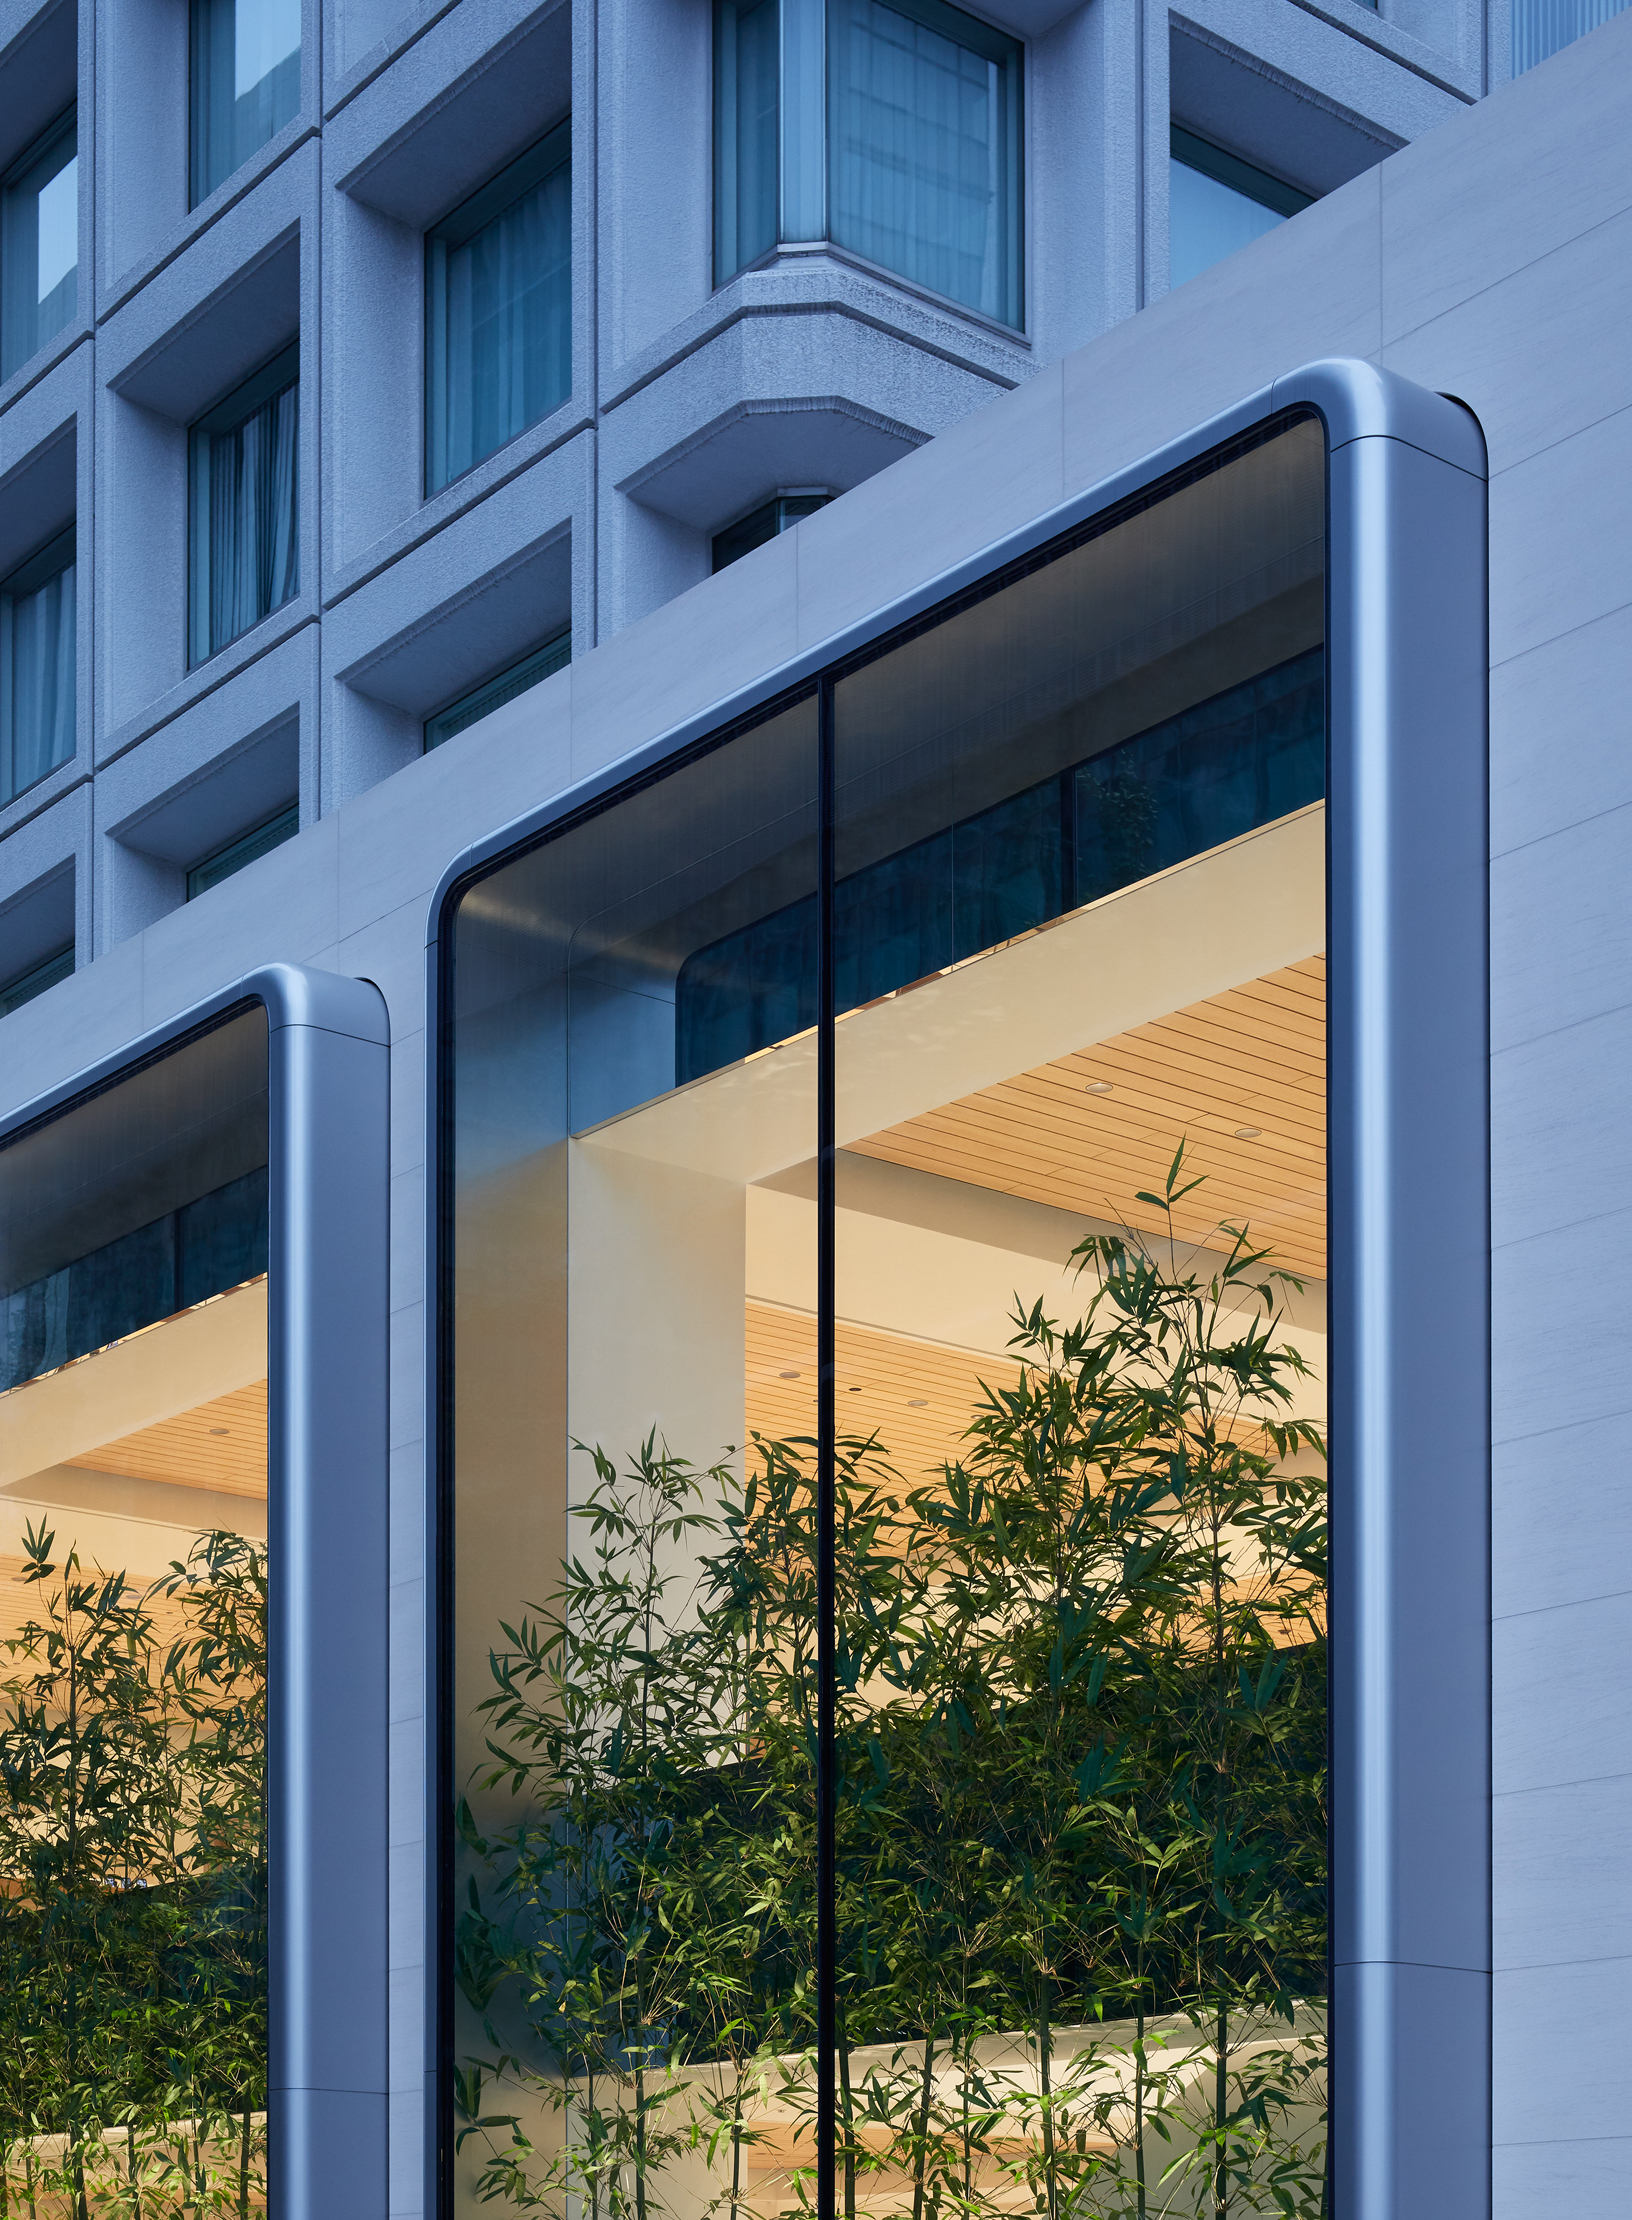 Apple's New Marunouchi Store Opening Saturday, September 7 in Tokyo - Largest Store in Japan